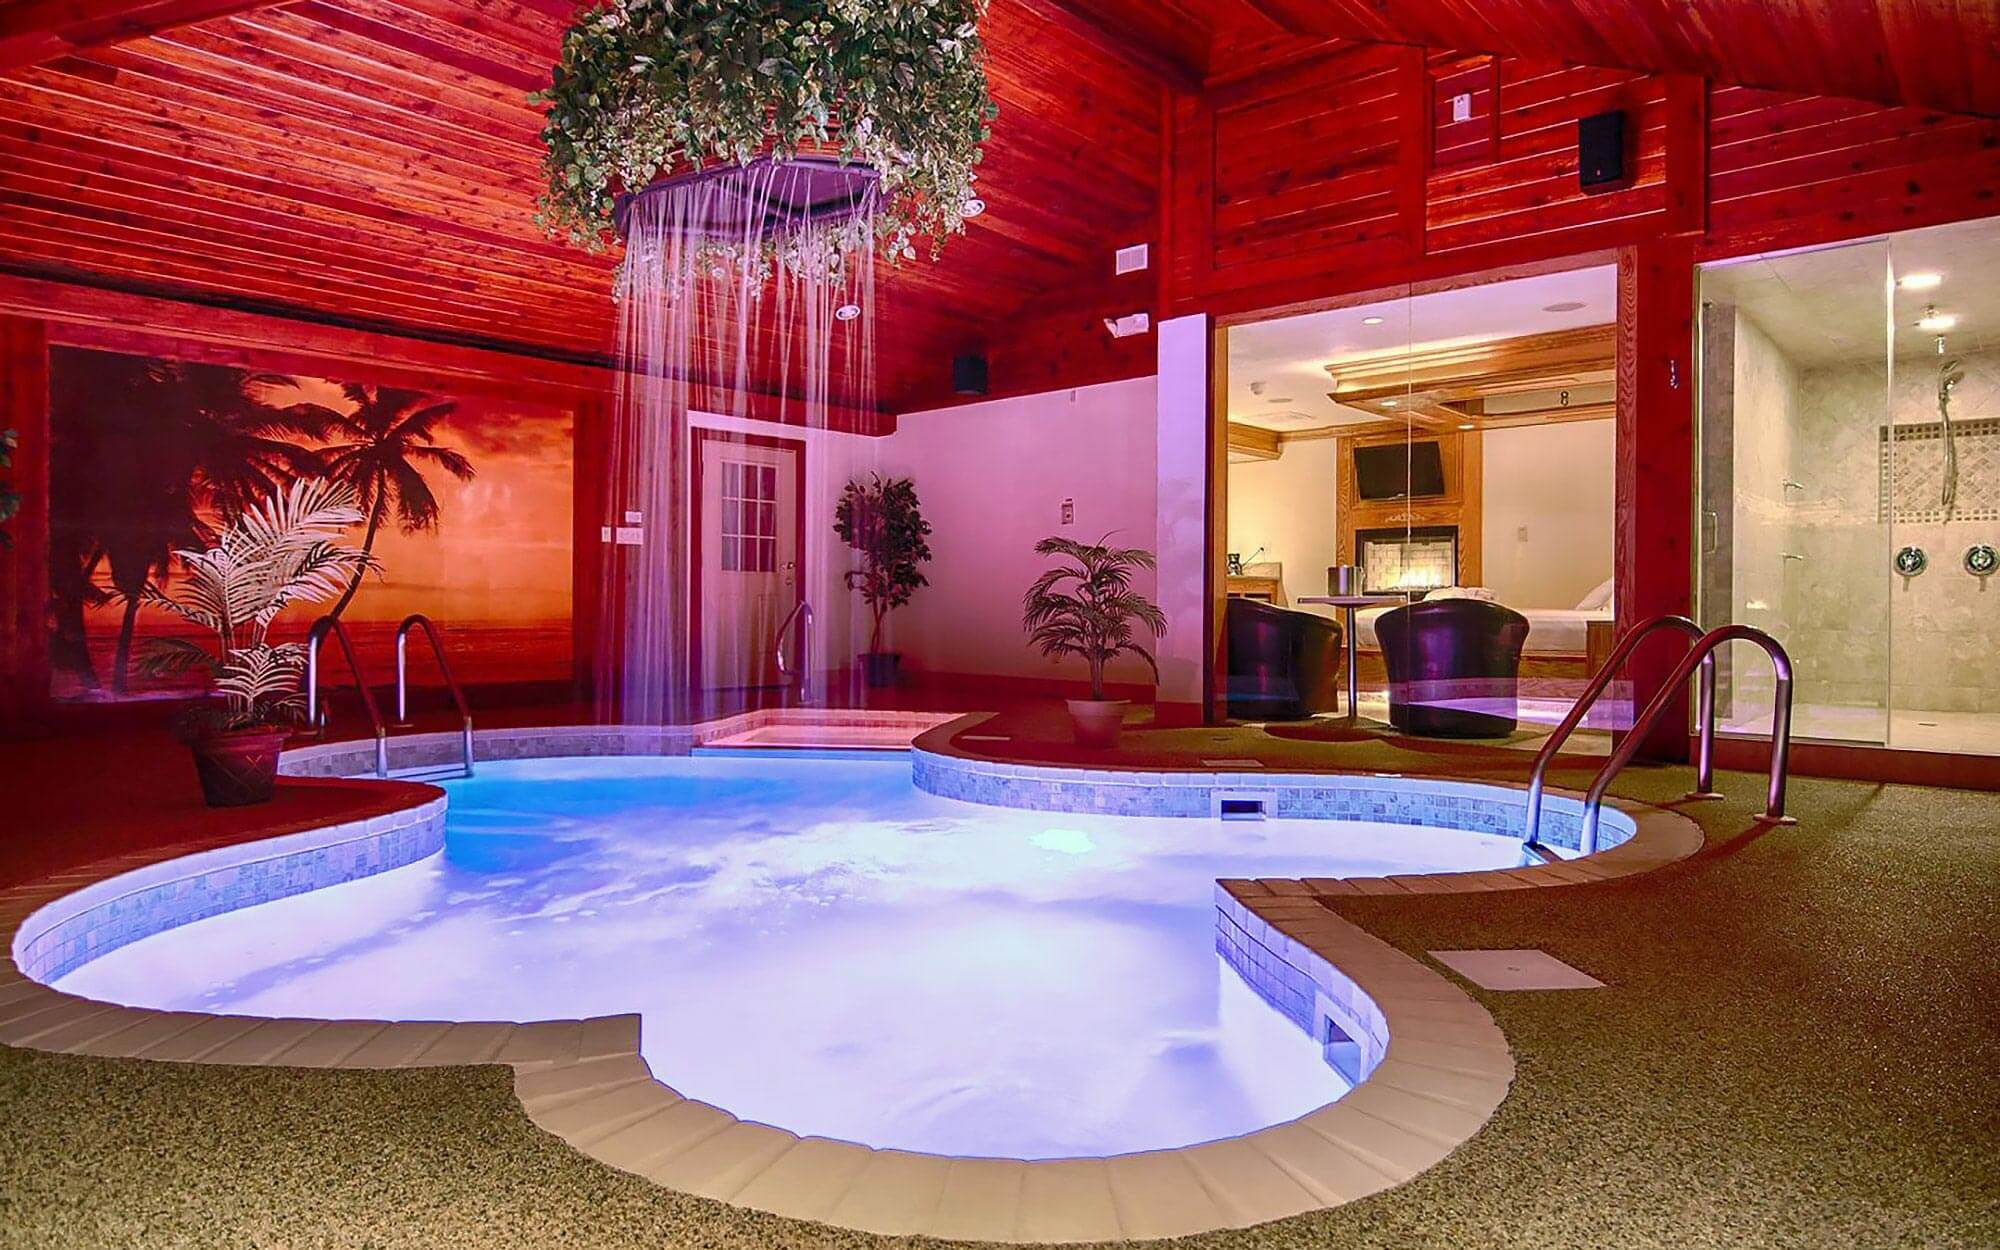 PARADISE SWIMMING POOL SUITE - Learn more...